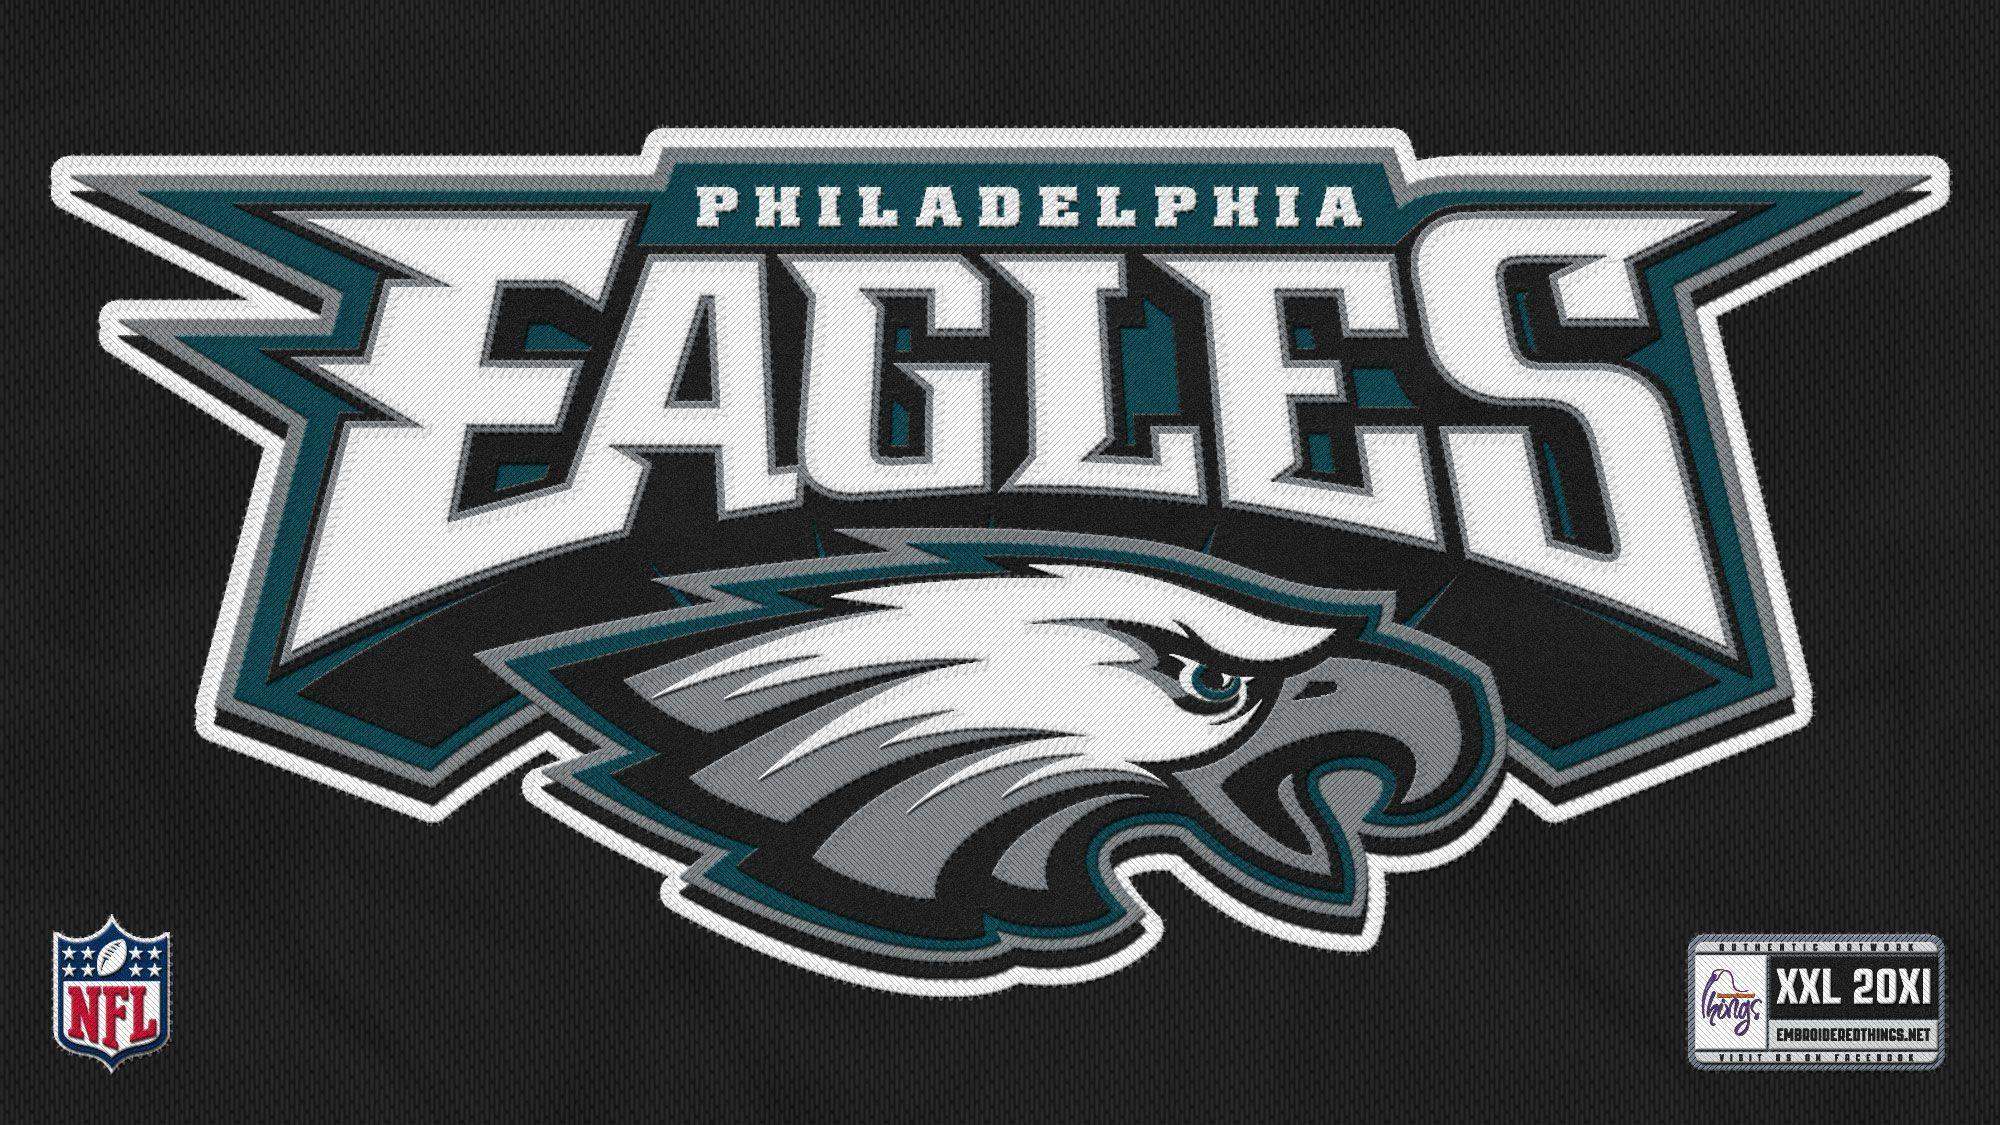 Philadelphia Eagles Logo Hd Phone Wallpapers